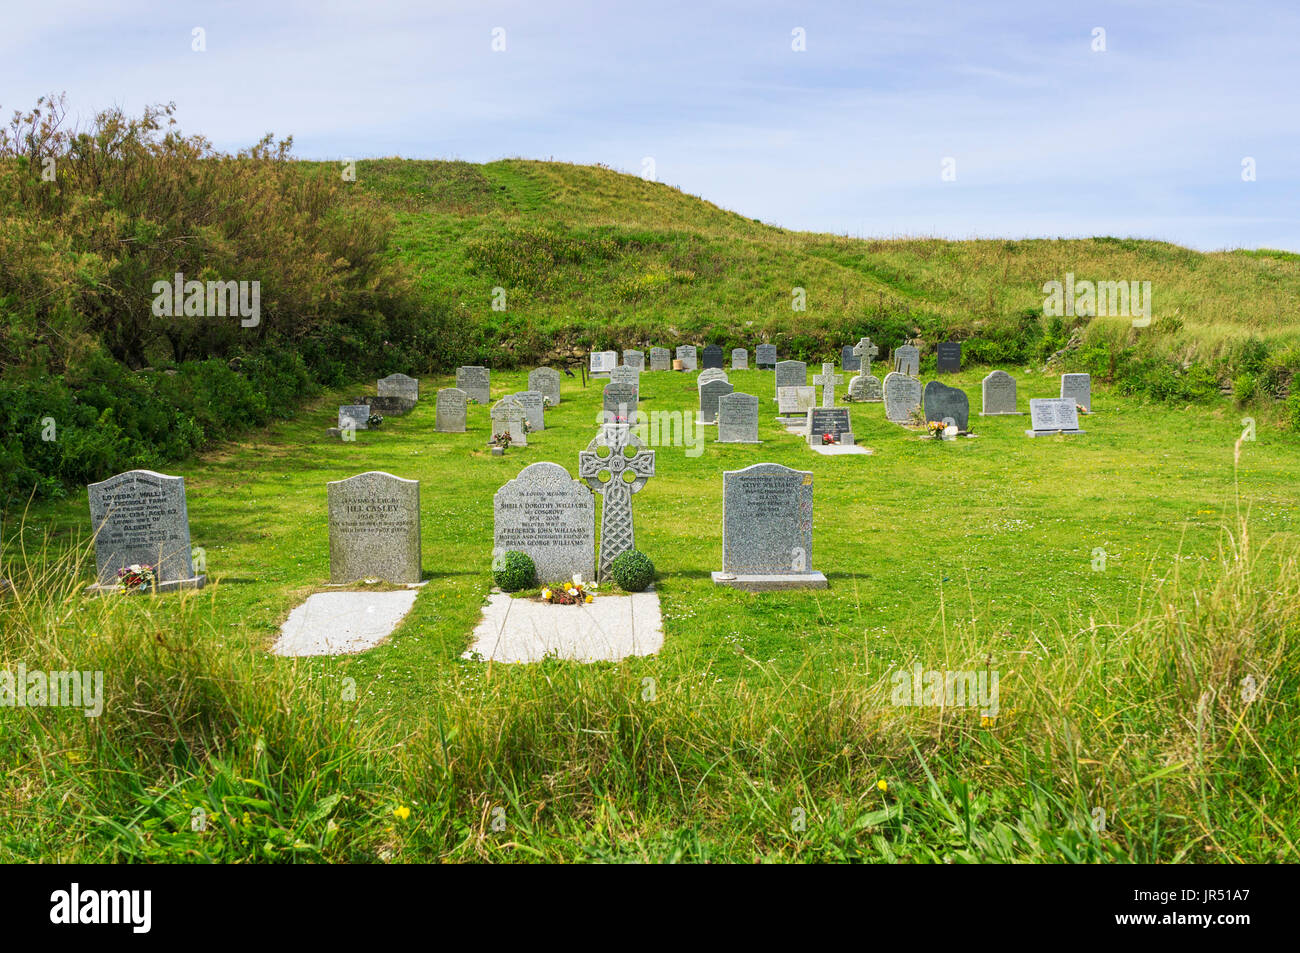 Small graveyard in the country, England, UK - Stock Image